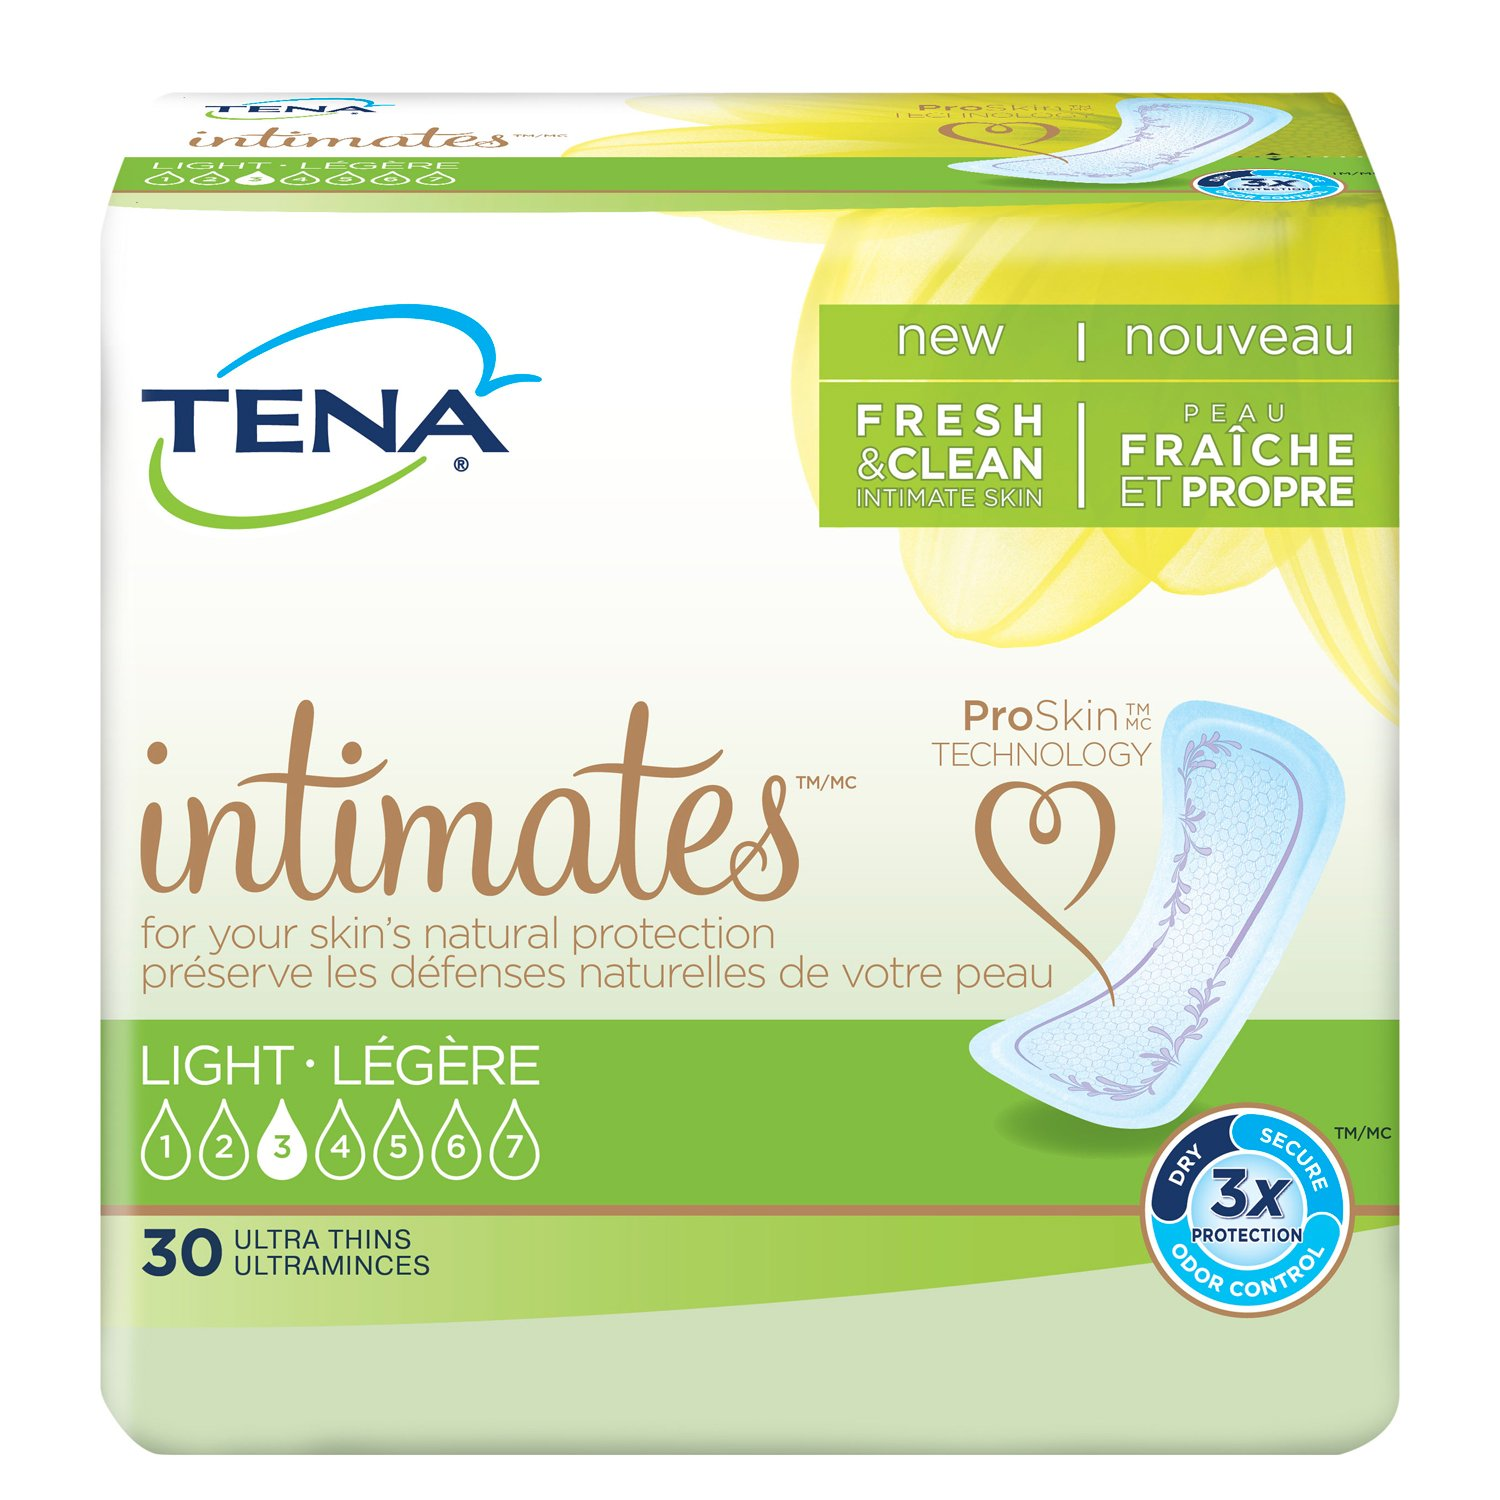 Tena Incontinence Ultra Thin Pads for Women, Light, Regular, 30 Count (Pack of 6) - (Packaging May Vary)